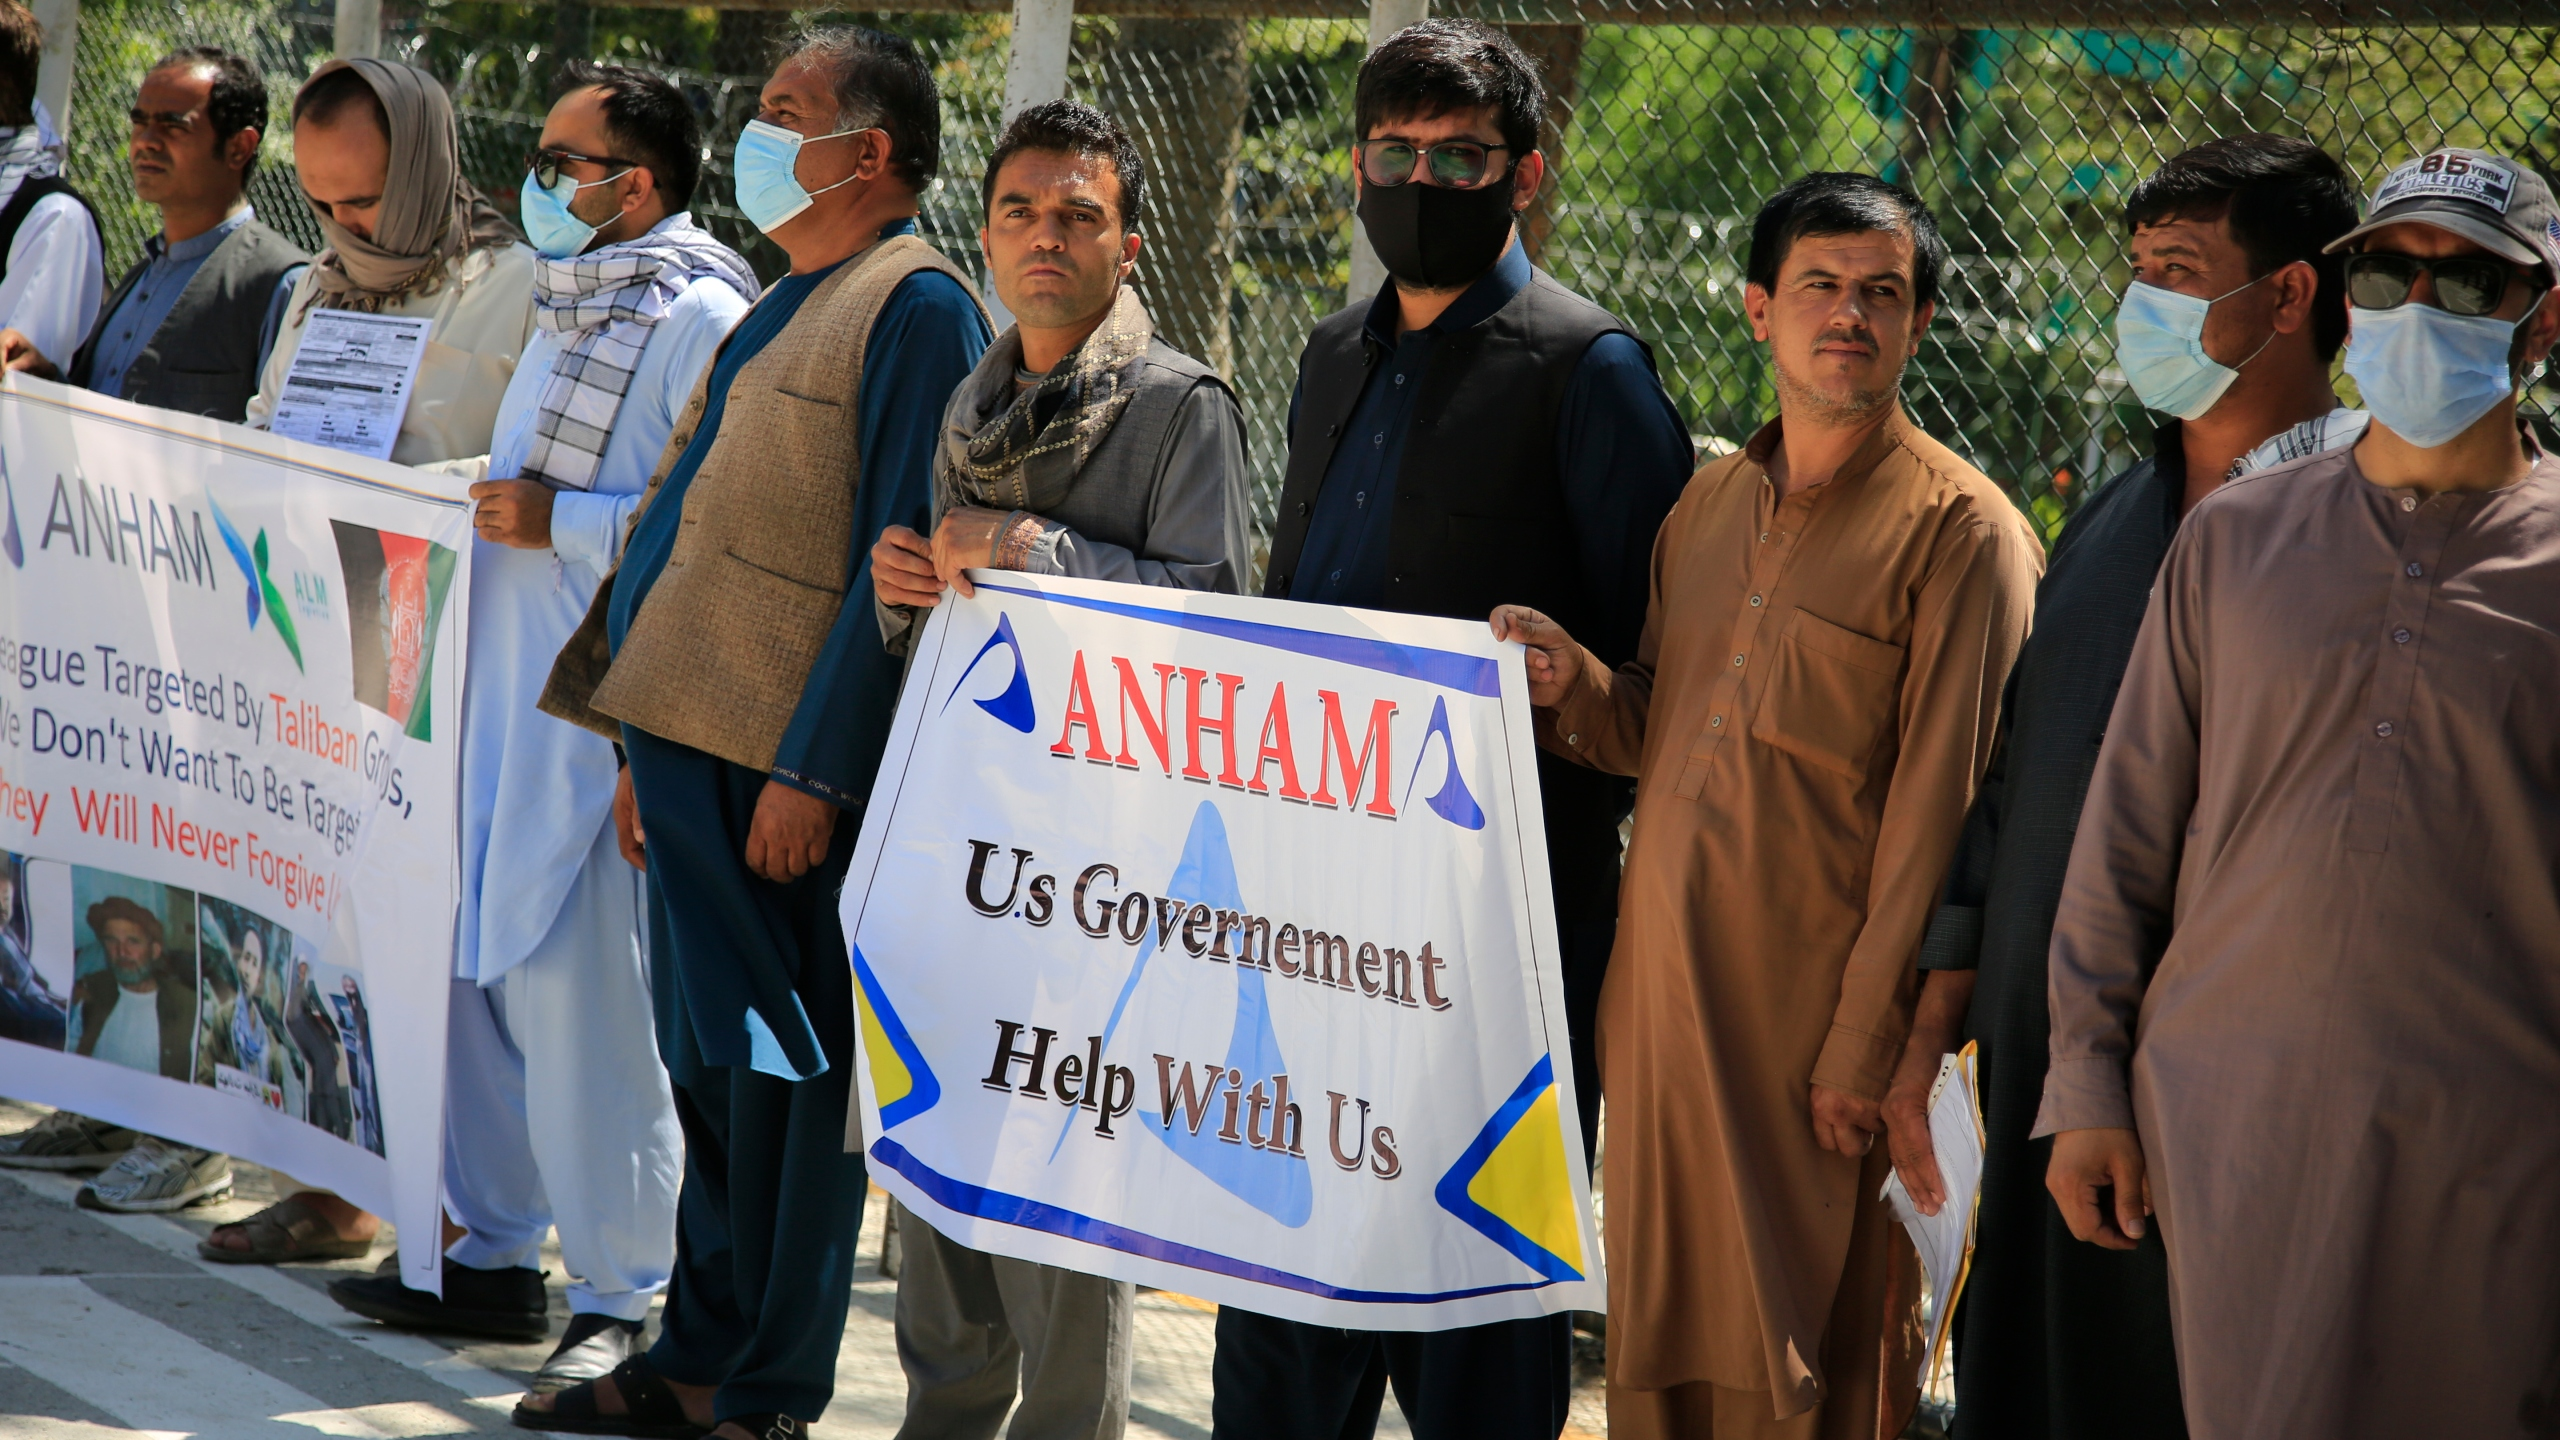 Former workers who had been employed with U.S. troops at the Bagram airbase hold placards during a demonstration against the U.S. government in Kabul, Afghanistan on July, 9, 2021. (Mariam Zuhaib/Associated Press)